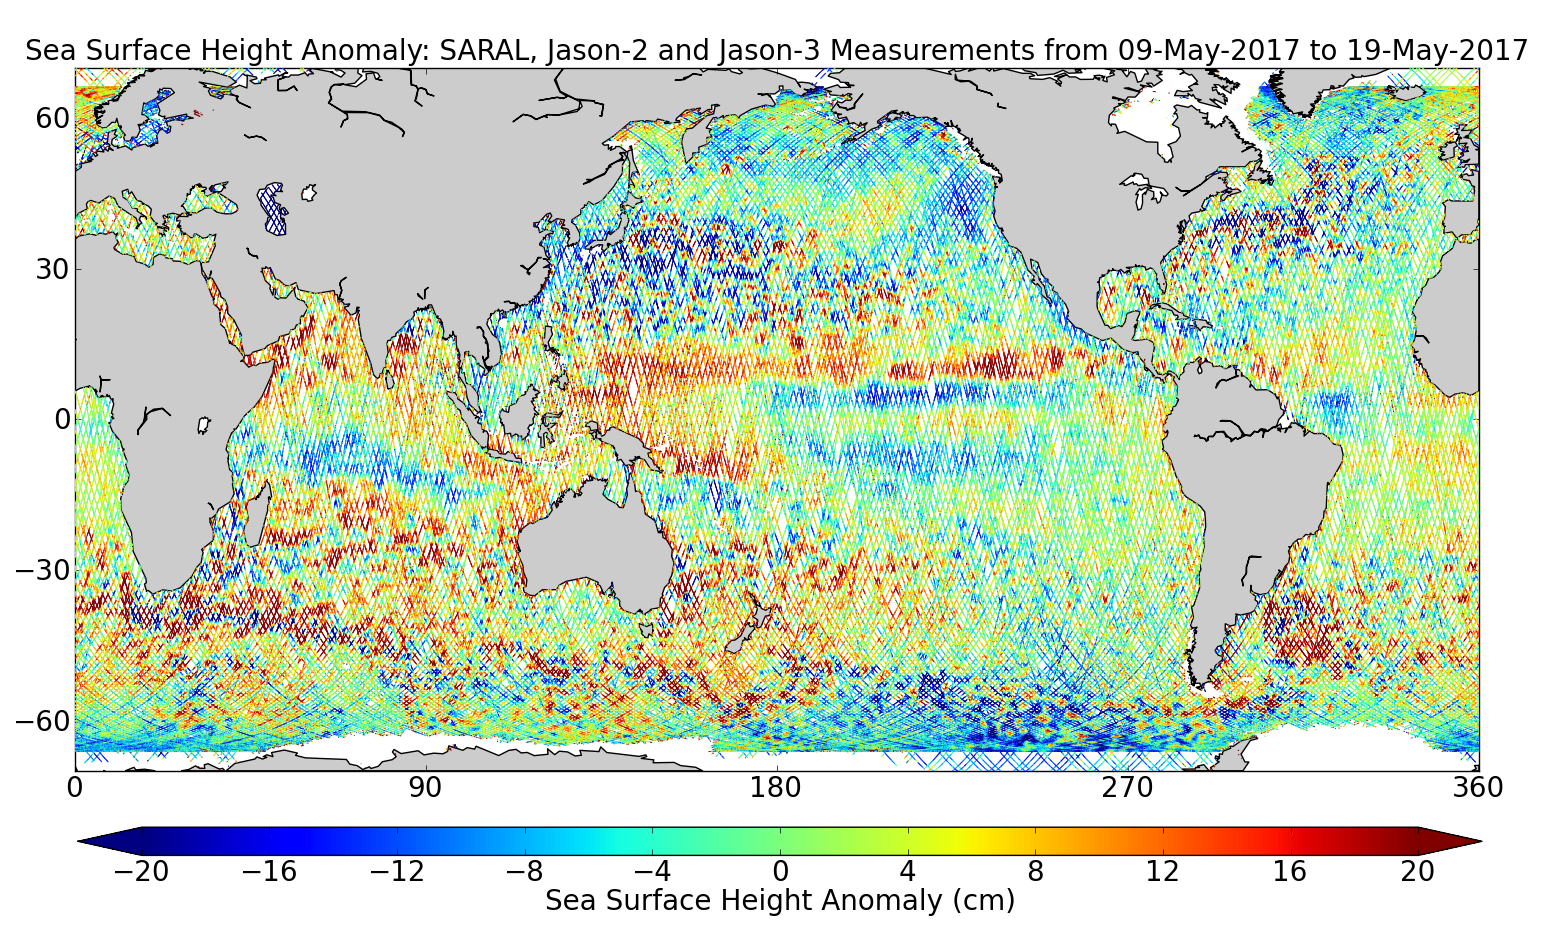 Sea Surface Height Anomaly: SARAL, Jason-2 and Jason-3 Measurements from 09-May-2017 to 19-May-2017